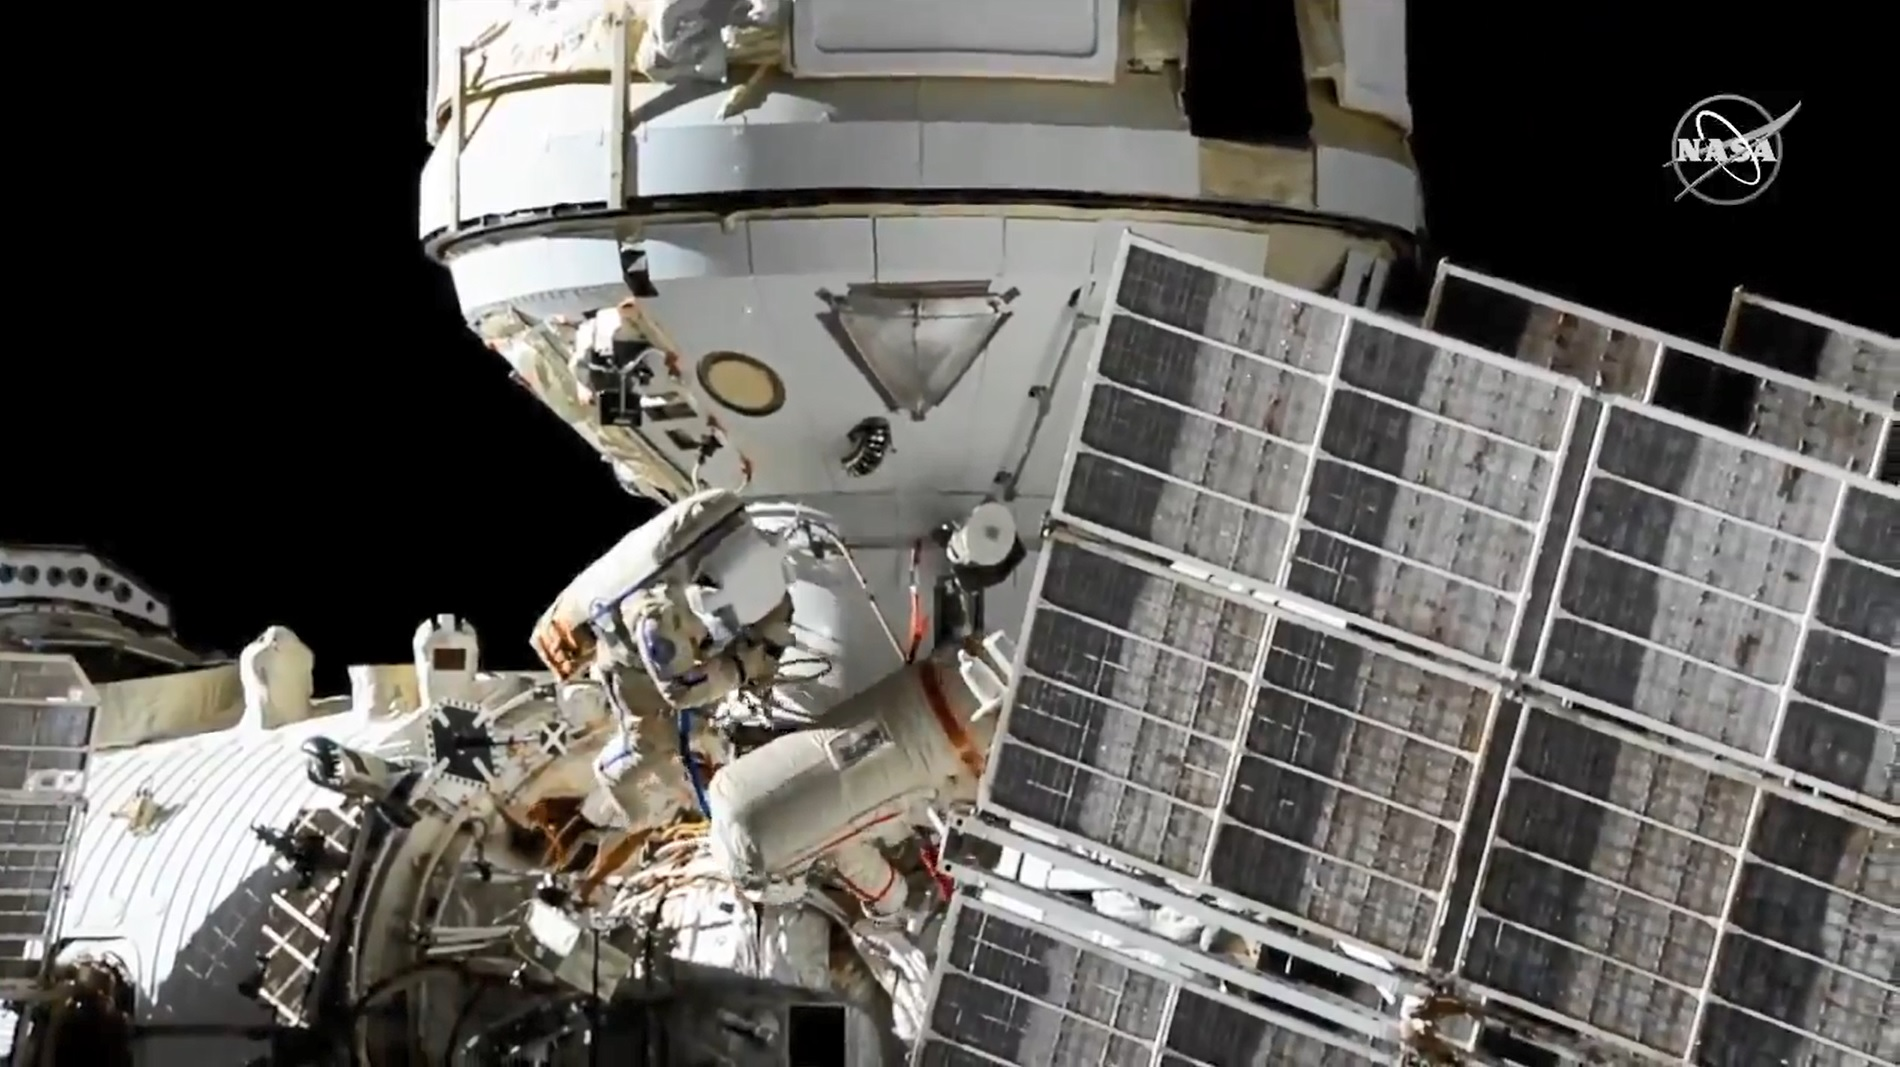 Cosmonauts Oleg Novitskiy and Pyotr Dubrov during a spacewalk to connect power and ethernet cables to the Nauka laboratory module.